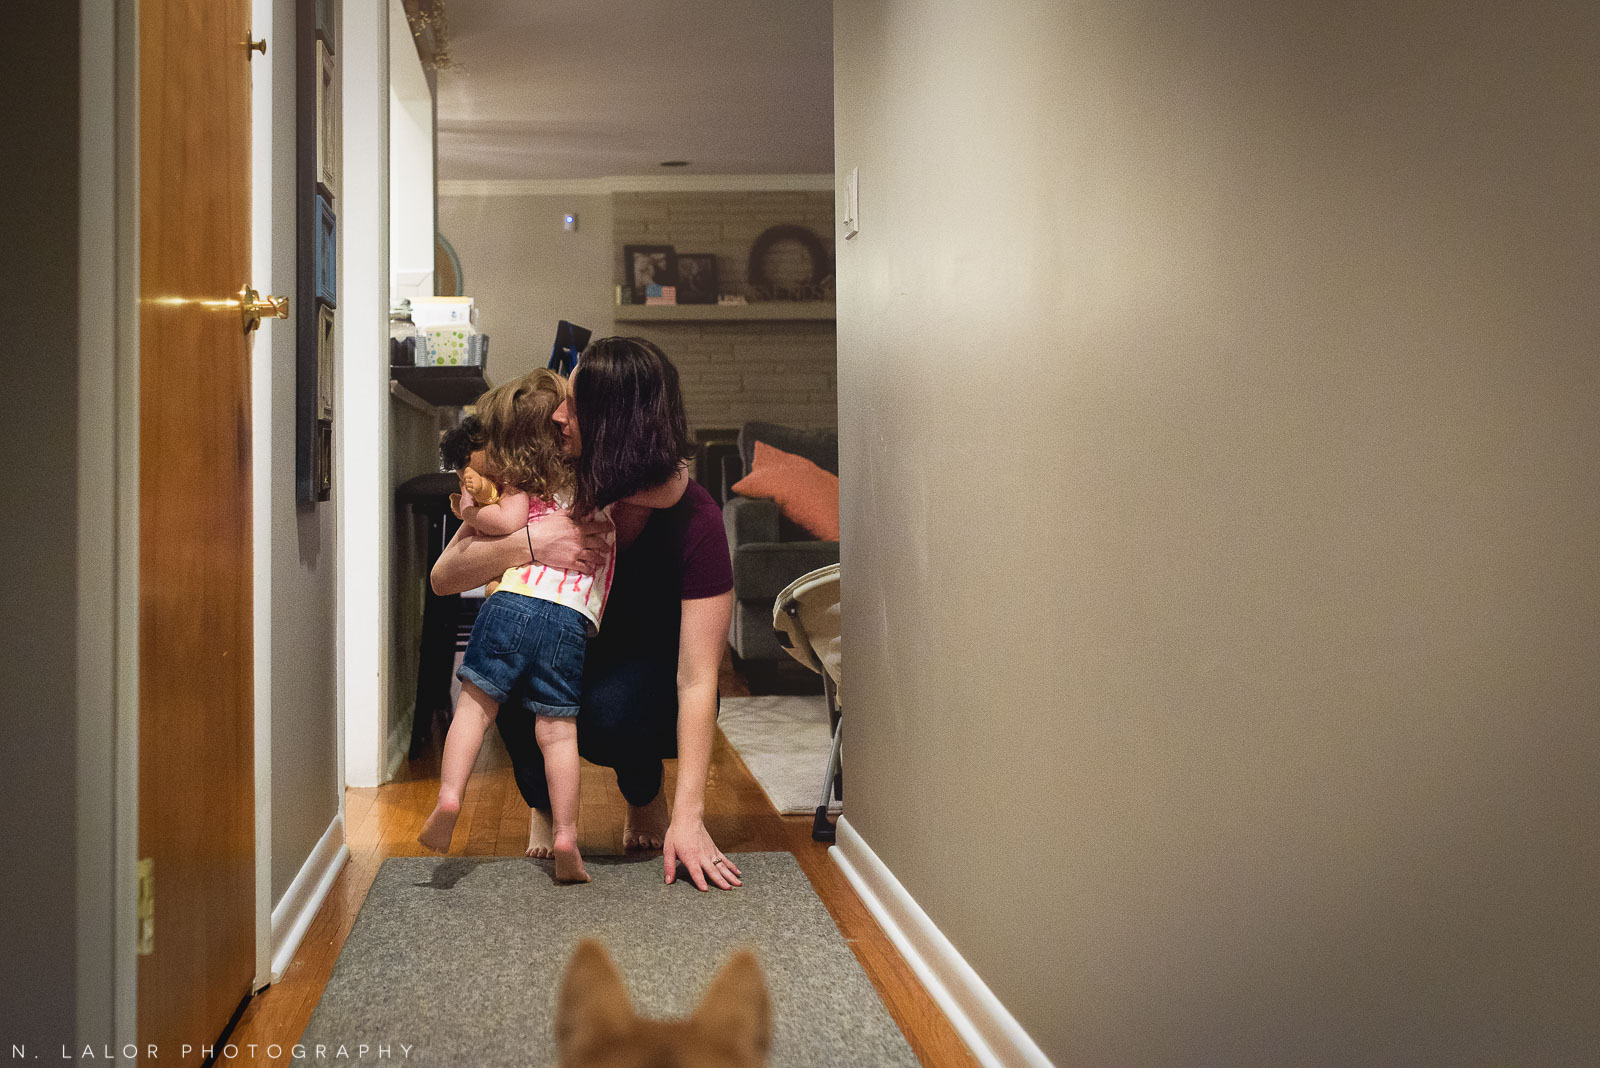 2-year old girl gives Mom early morning hugs in the hallway. Documentary photo by N. Lalor Photography.